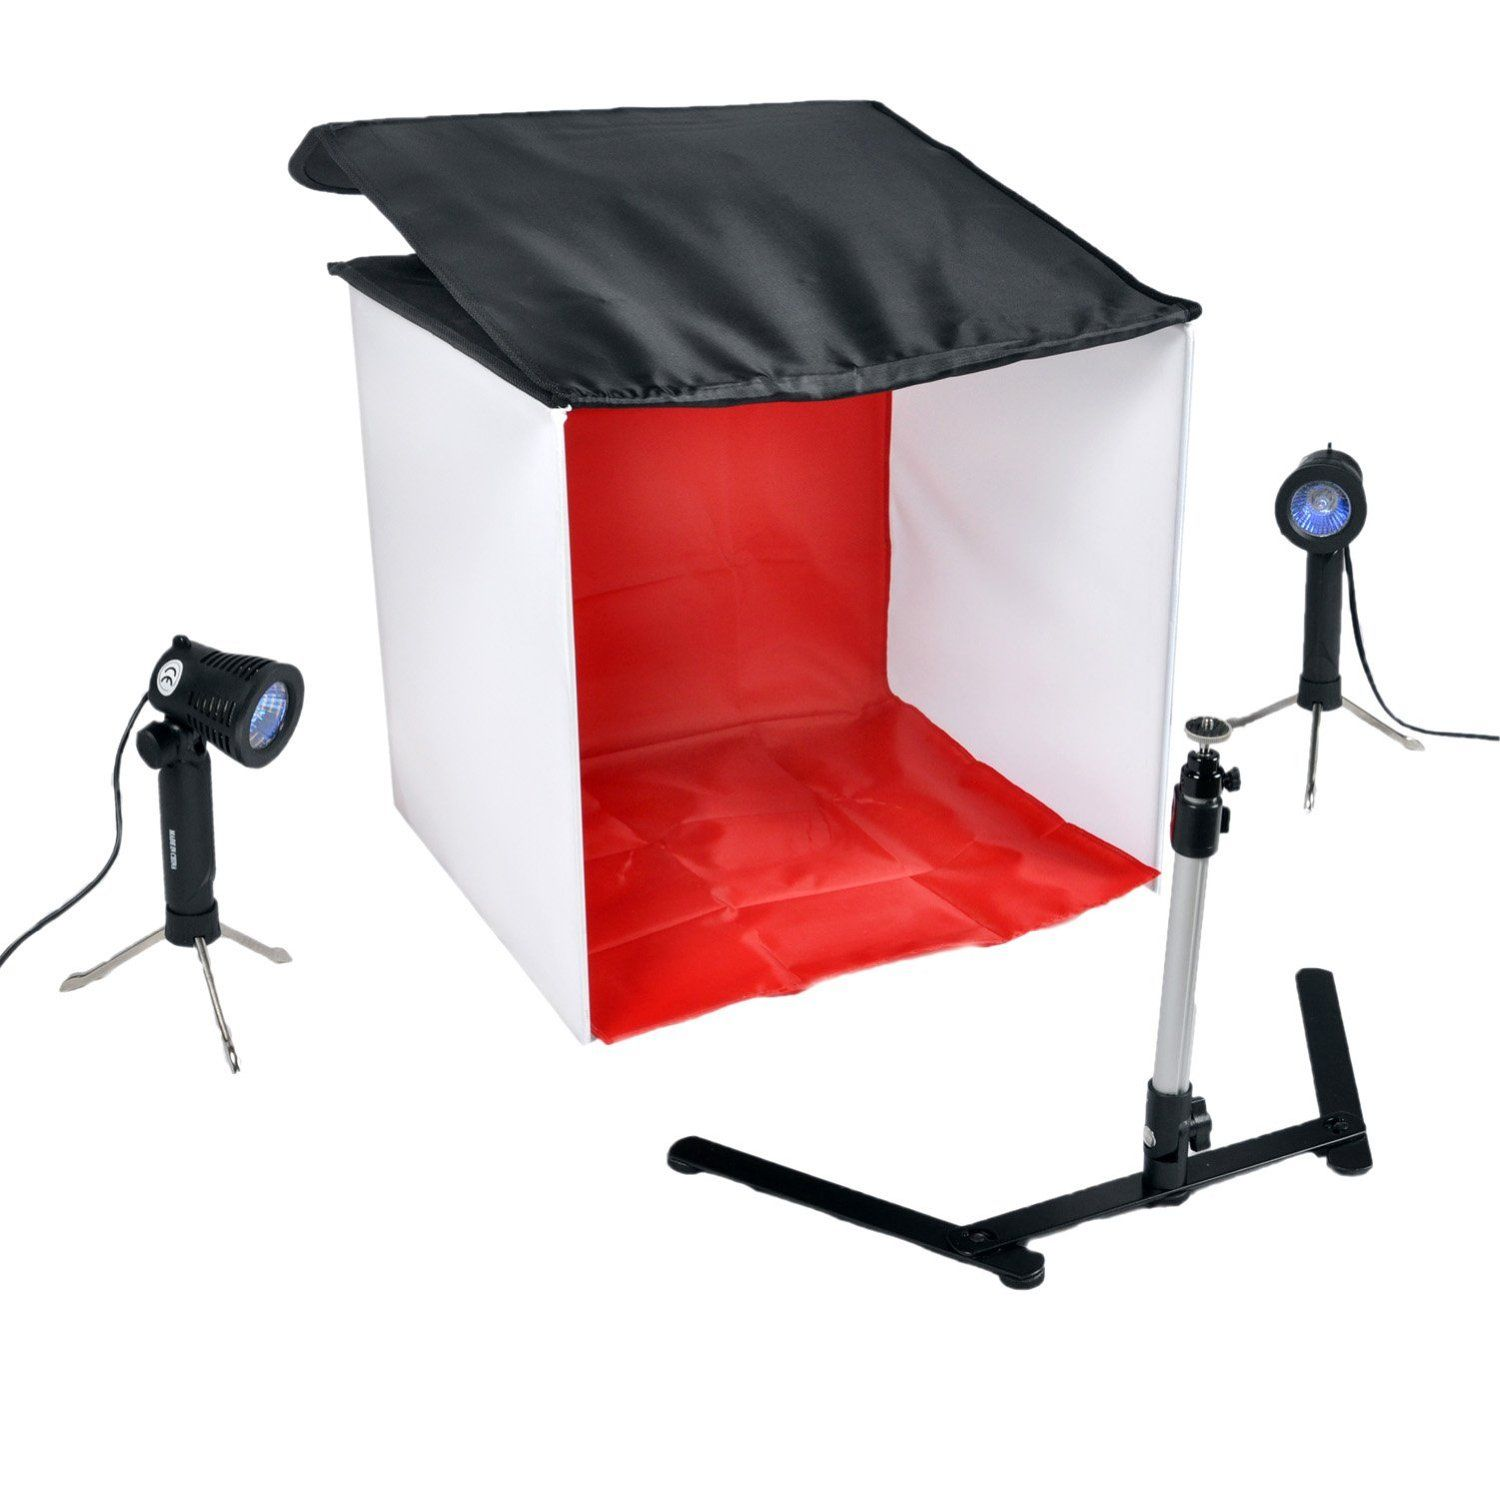 Cowboystudio Table Top Photo Studio Light Tent Kit In A Box 1 Tent 2 Light Set 1 Stand 1 Case Photographic Lighting Ca